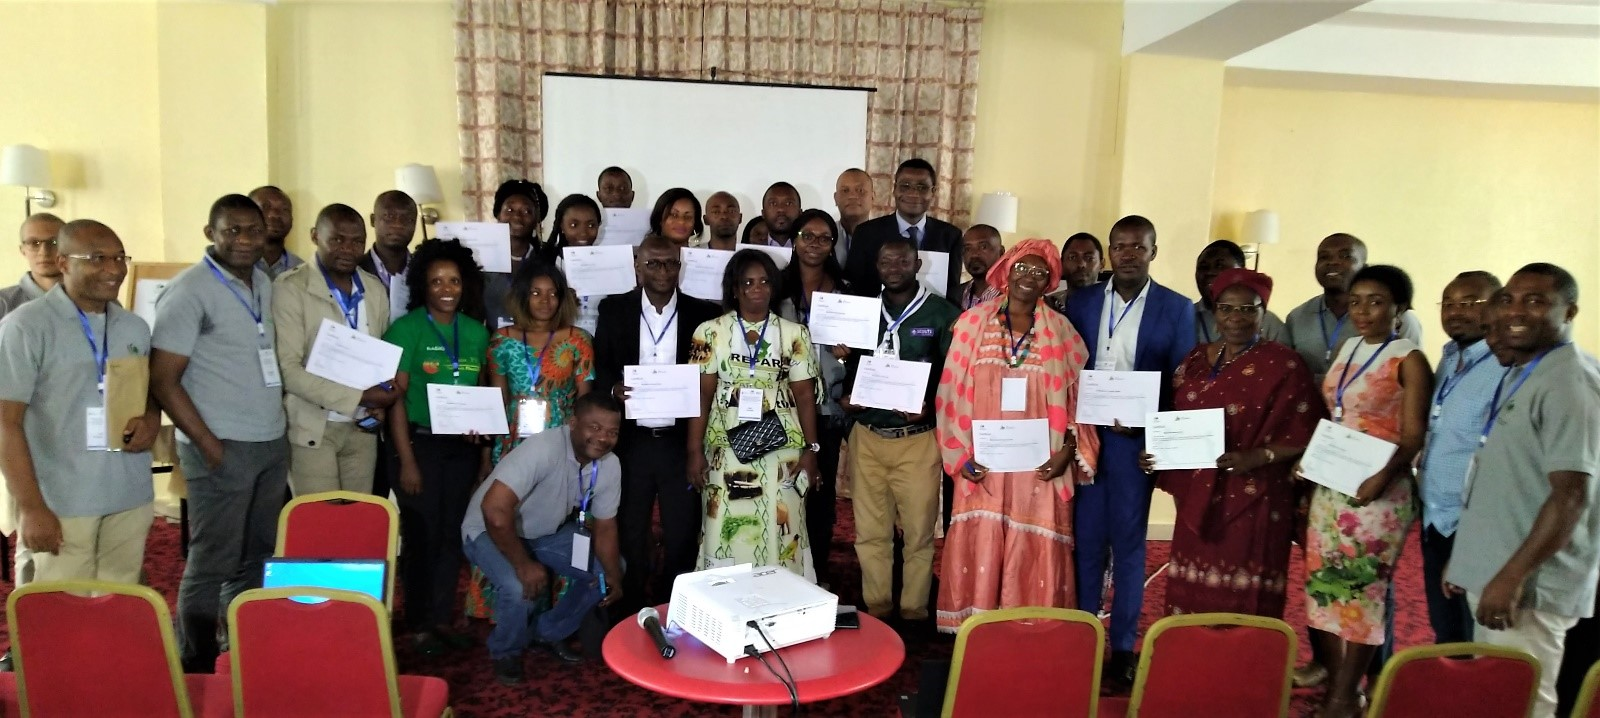 Information for better awareness: the first AO Alliance media seminar in Cameroon